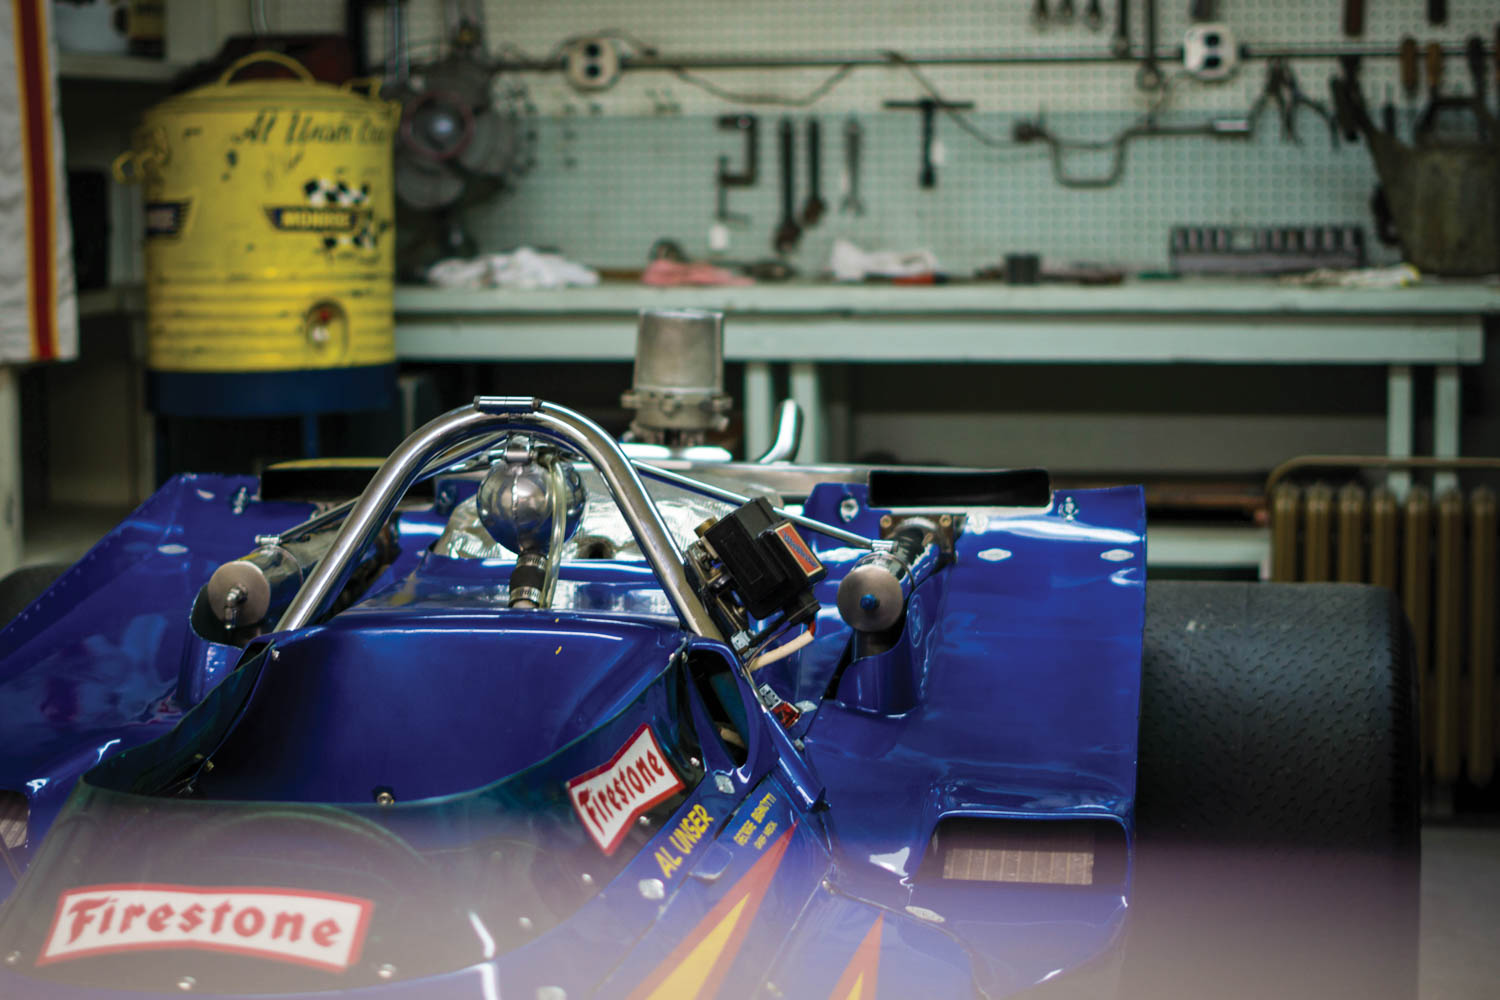 Al Unser drove the Johnny Lightning Special to an Indy 500 victory in his dominant 1970 season. Now it resides in the IMS Museum.